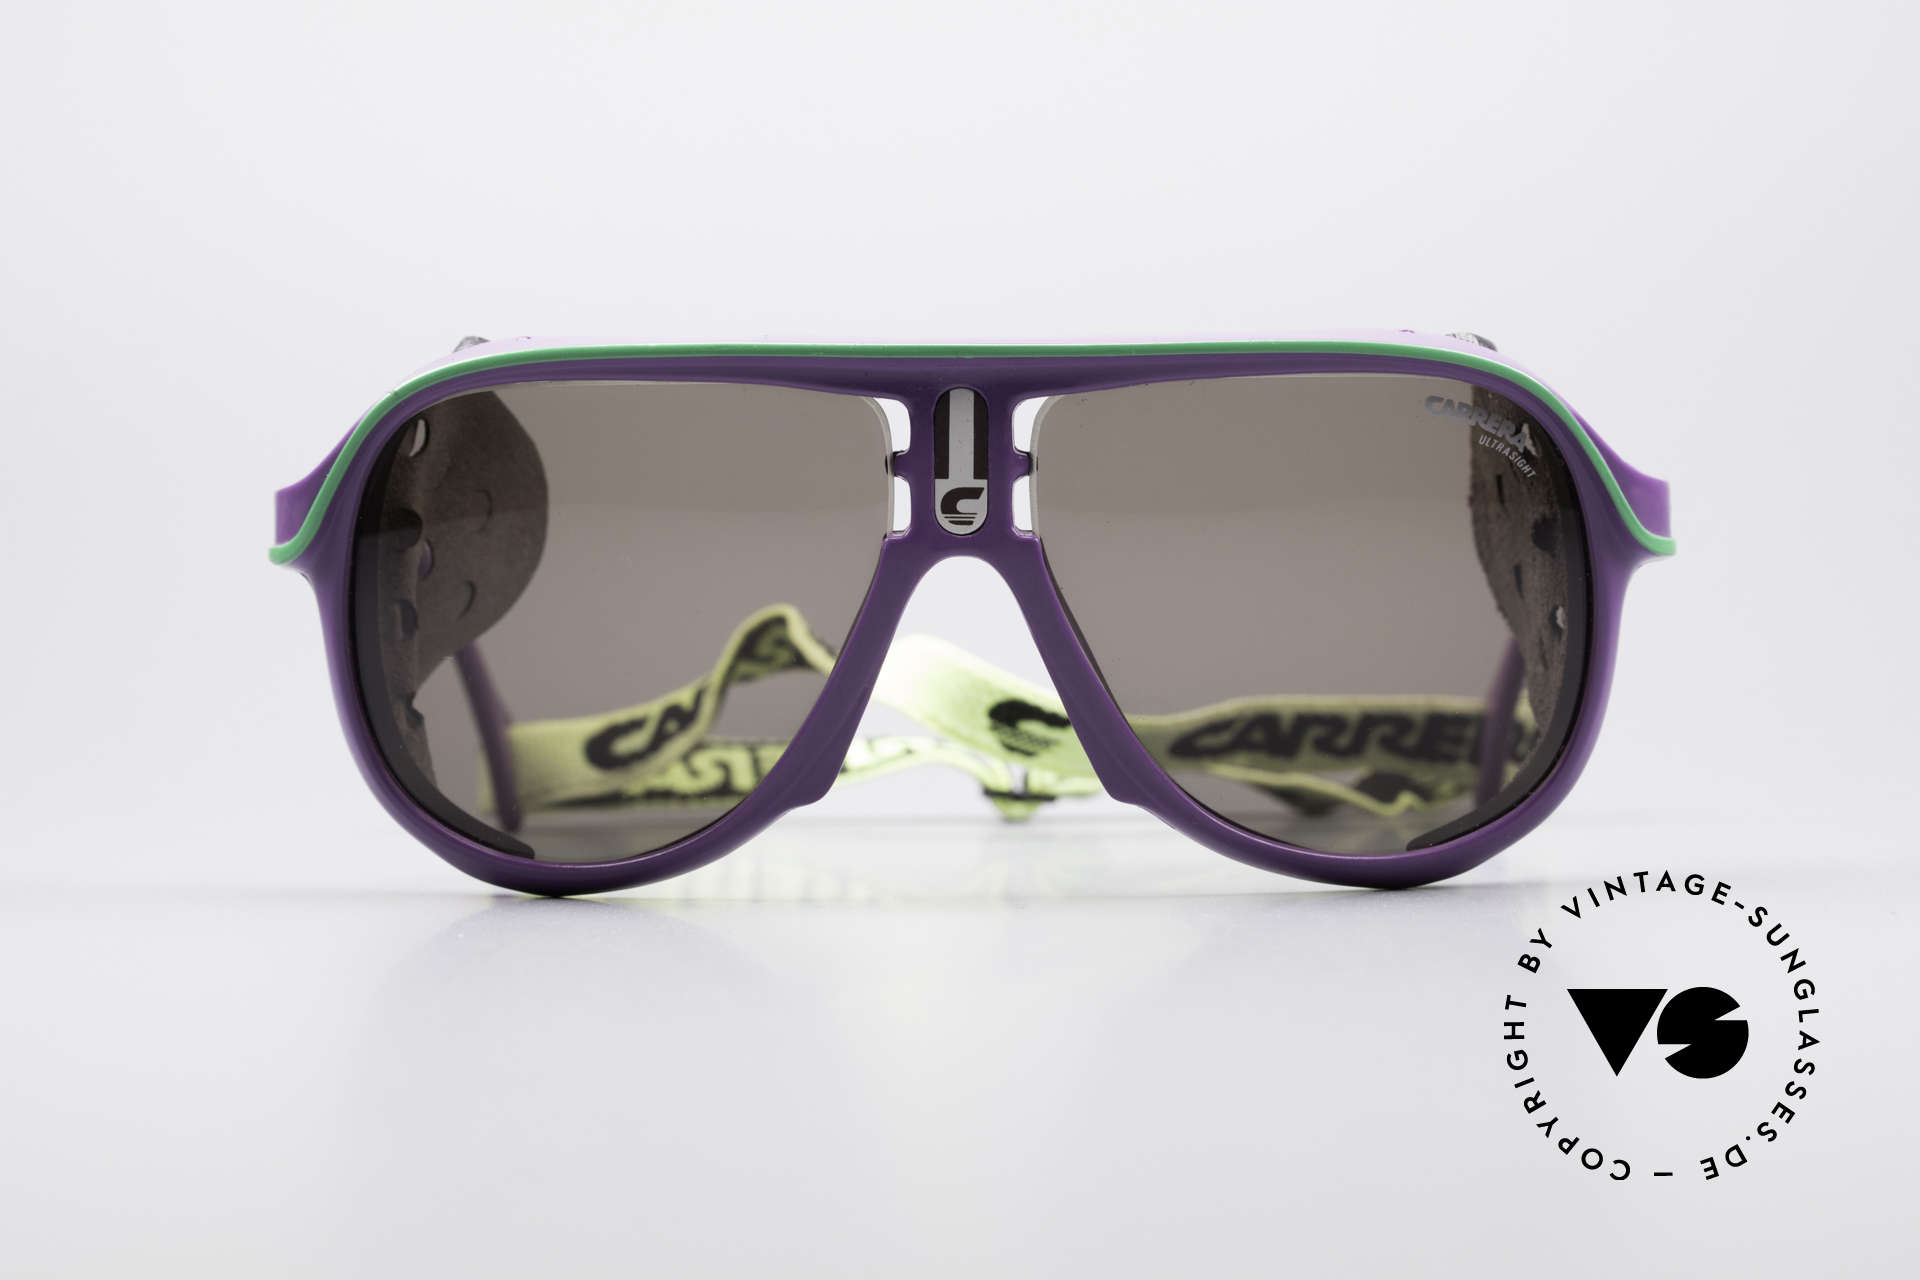 Carrera 5544 Sports Glacier Sunglasses, perfect fit and high wearing comfort (with elastic strap), Made for Men and Women